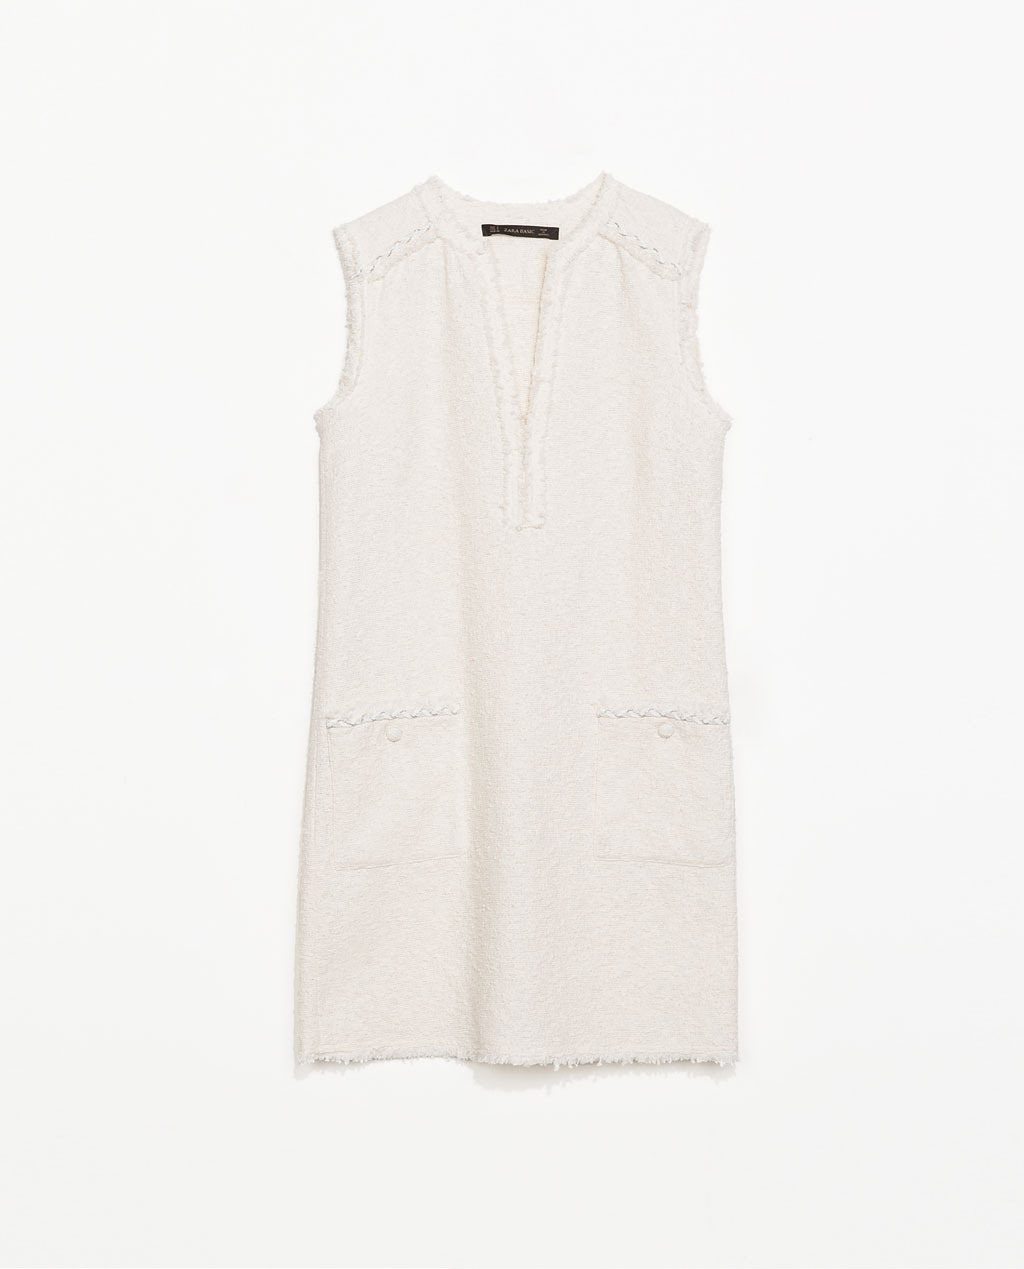 Structured Dress With Pockets - style: shift; length: mid thigh; neckline: low v-neck; sleeve style: sleeveless; hip detail: front pockets at hip; pattern: herringbone/tweed; predominant colour: ivory/cream; occasions: casual, evening, occasion, holiday, creative work; fit: straight cut; fibres: cotton - mix; sleeve length: sleeveless; pattern type: fabric; texture group: tweed - light/midweight; trends: lace; season: s/s 2014